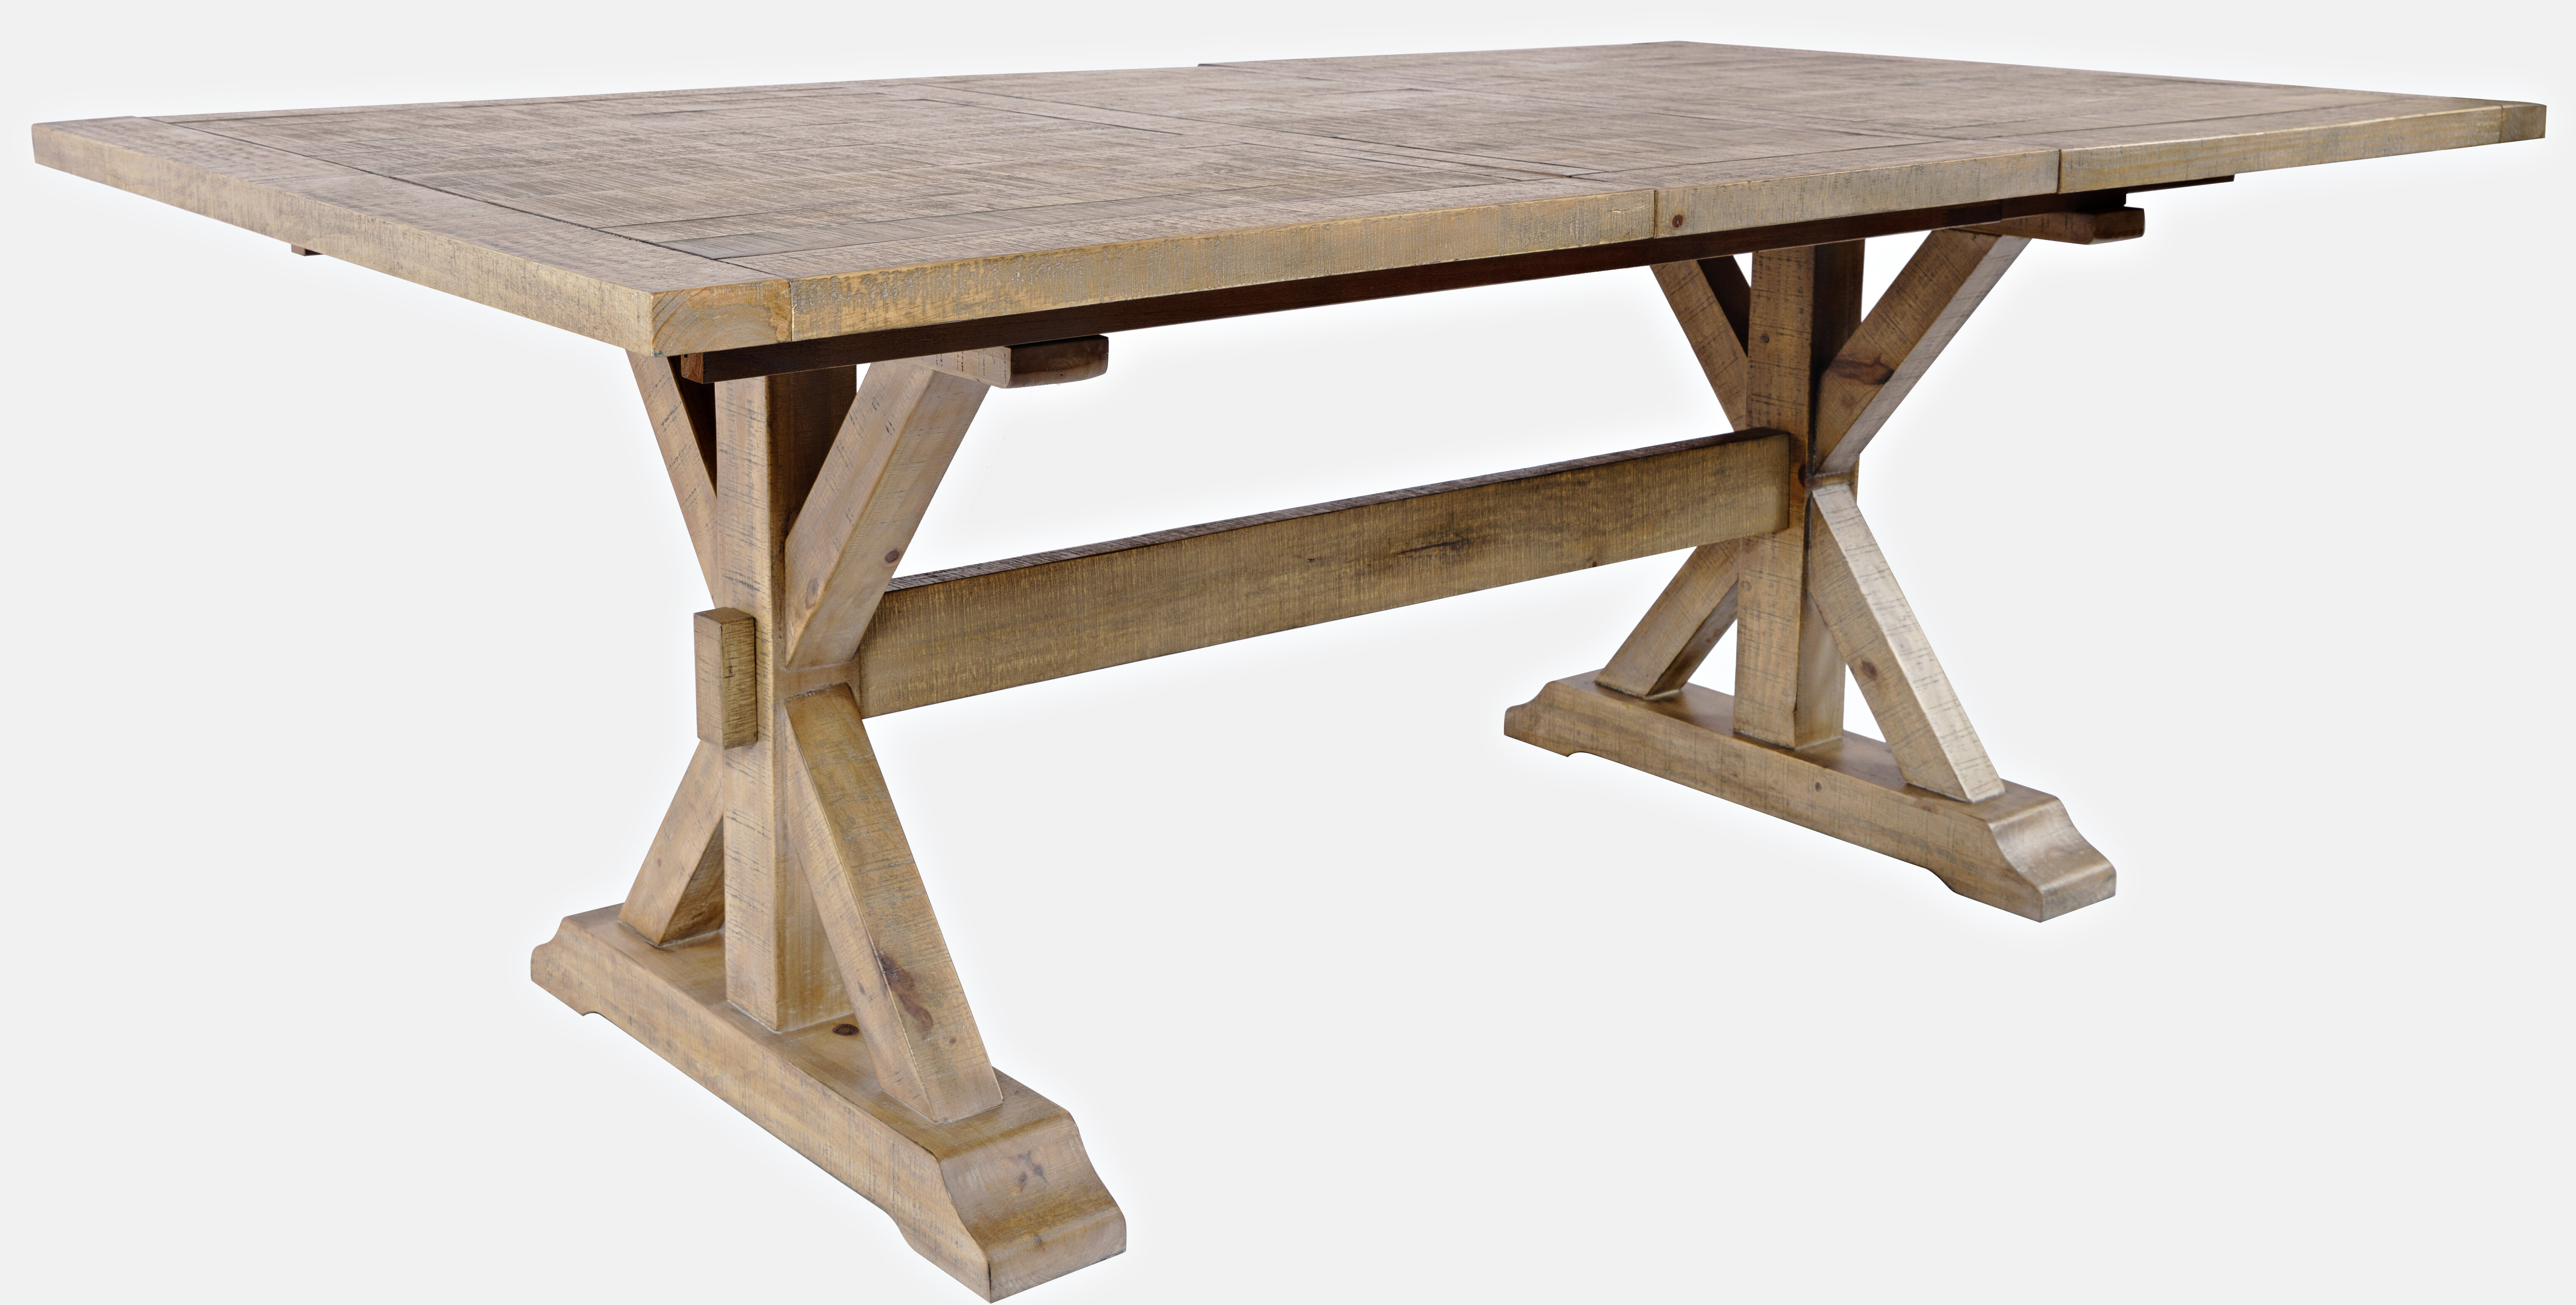 Three Posts Bryon Extendable Pine Solid Wood Dining Table Reviews Wayfair